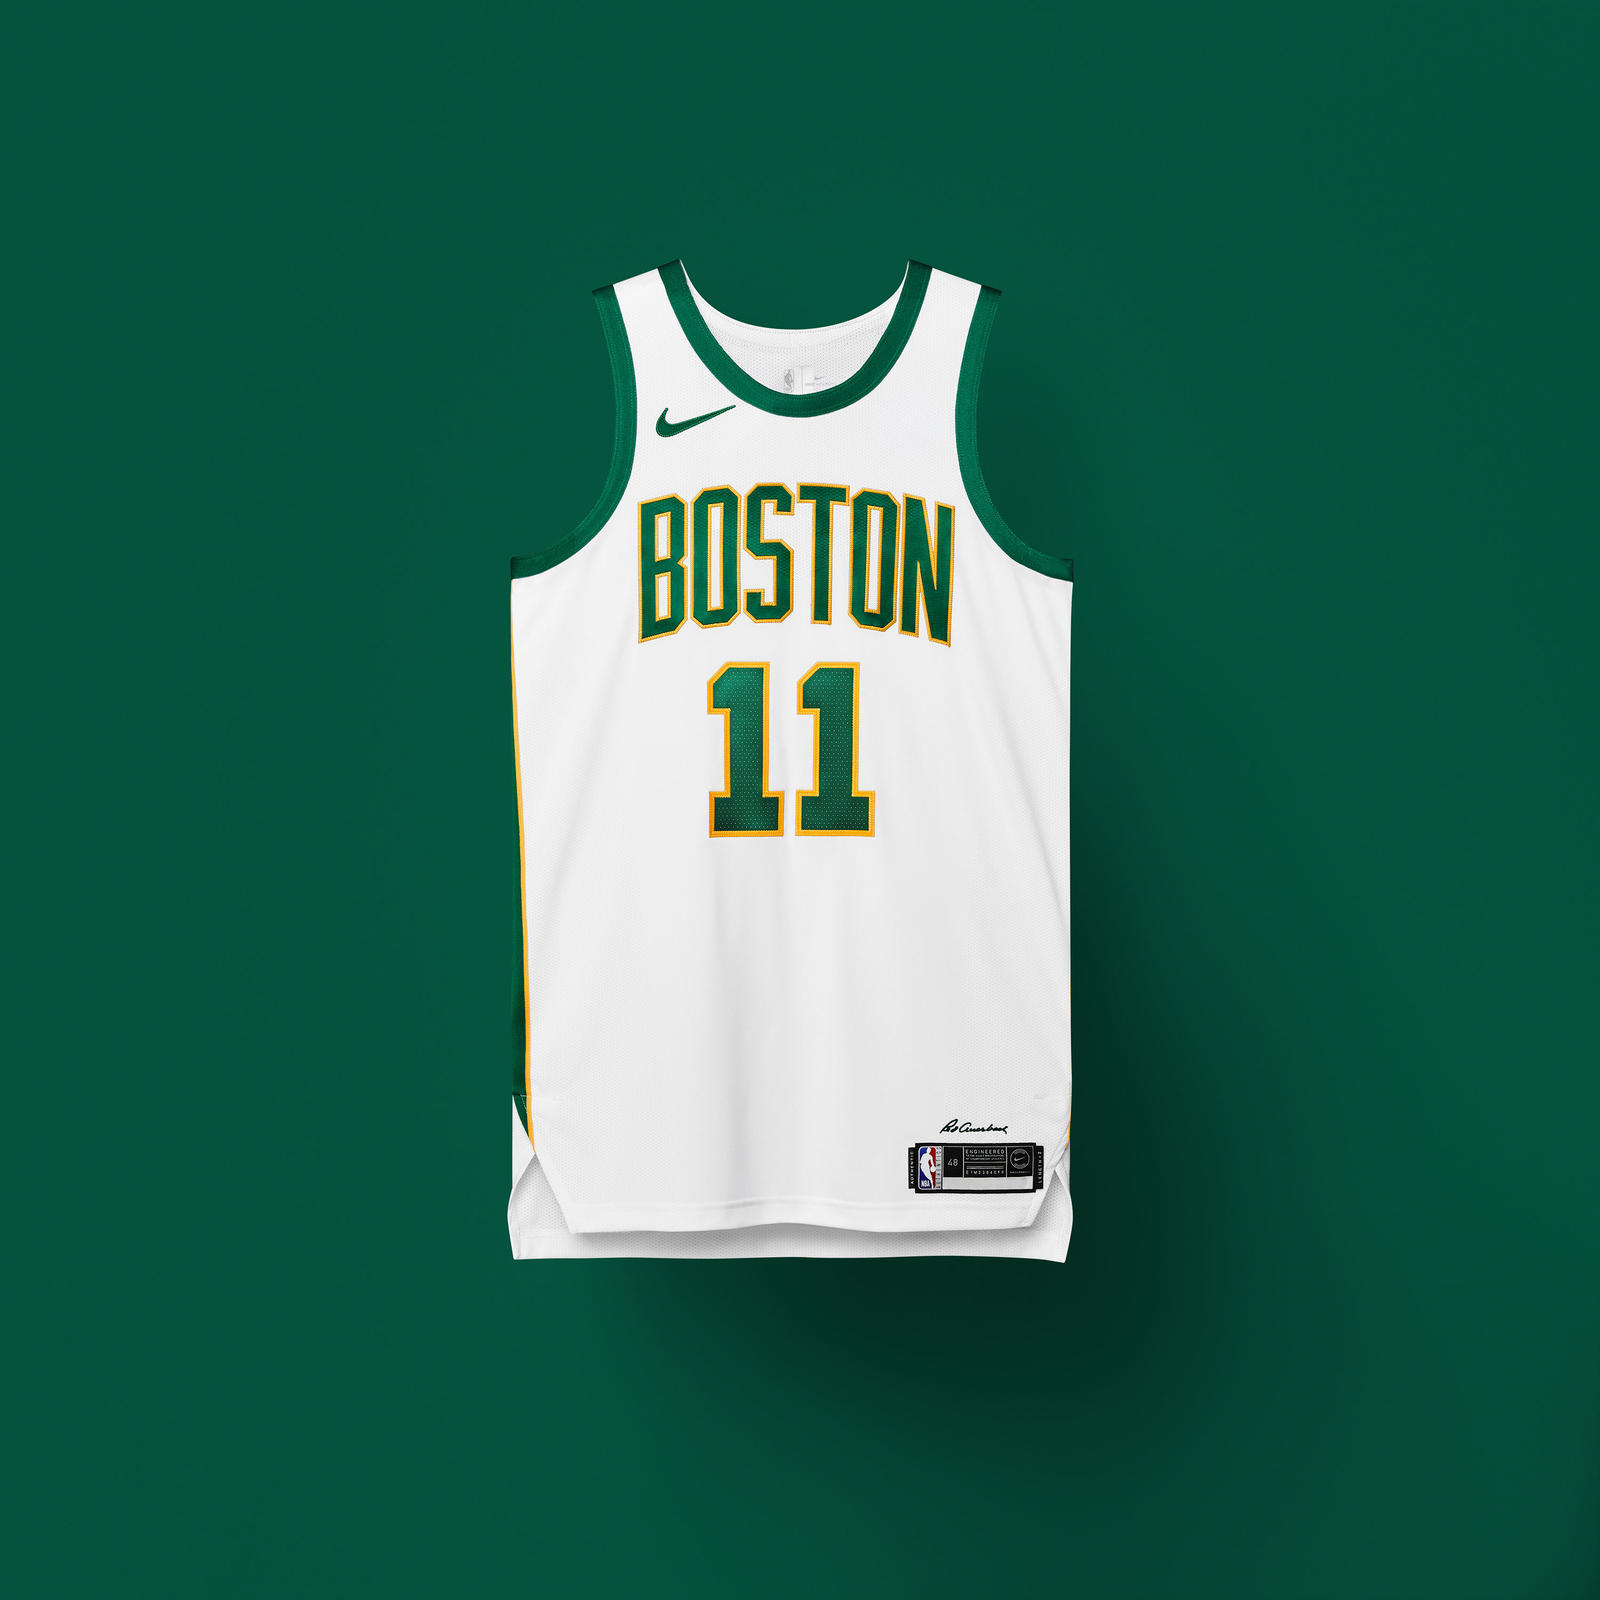 Ho18 nba city edition boston jersey 1070 re square 1600